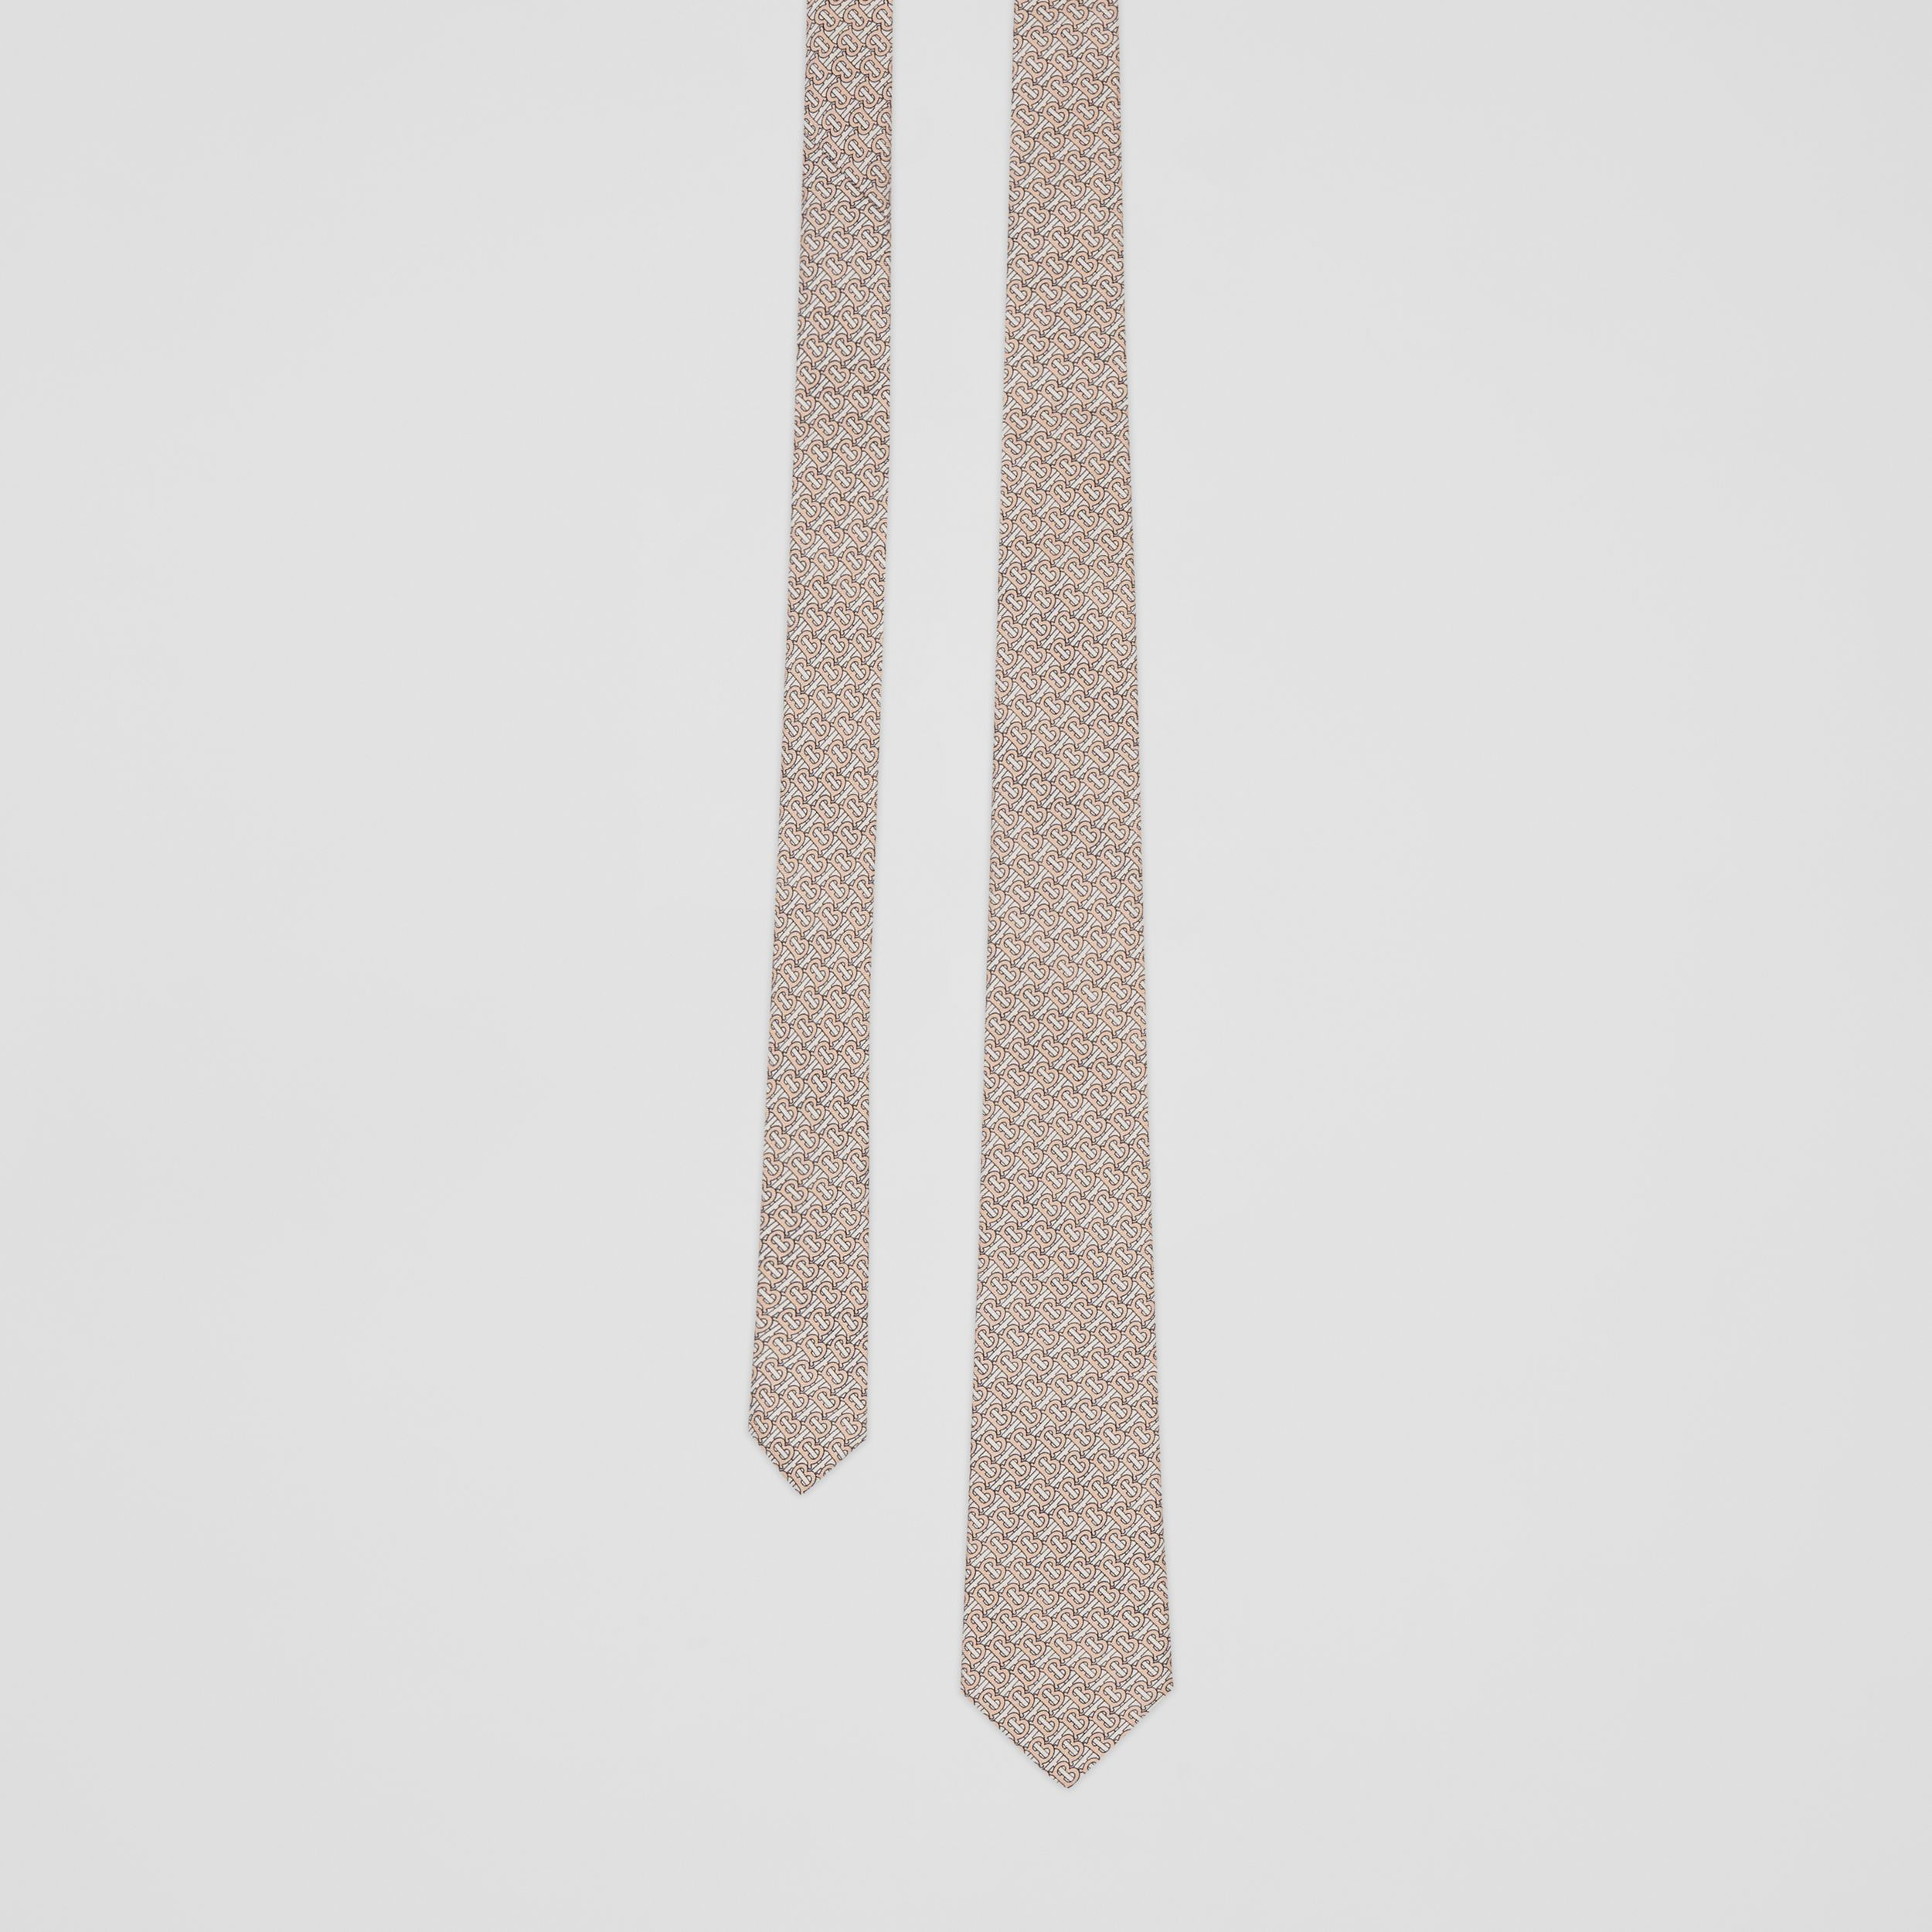 Classic Cut Monogram Silk Jacquard Tie in Blush Pink - Men | Burberry - 1